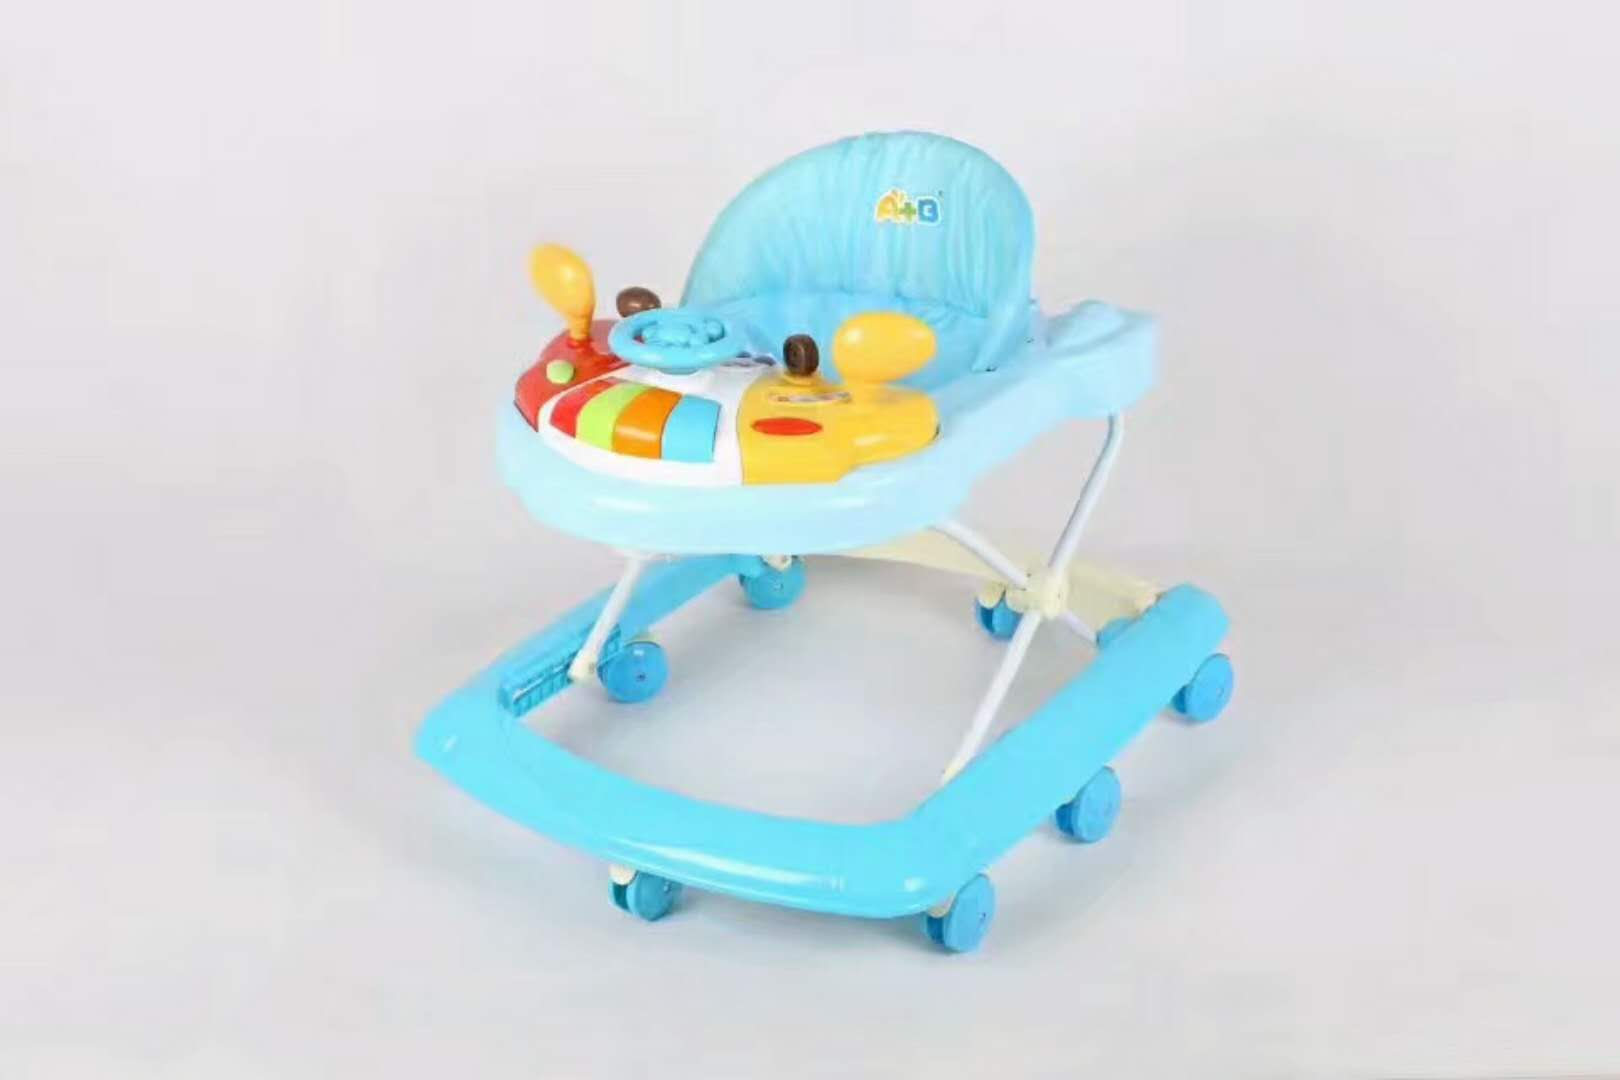 2019 New Model Baby Walker Mini Walker Baby Walker with Low Prices for 6-18 months kids